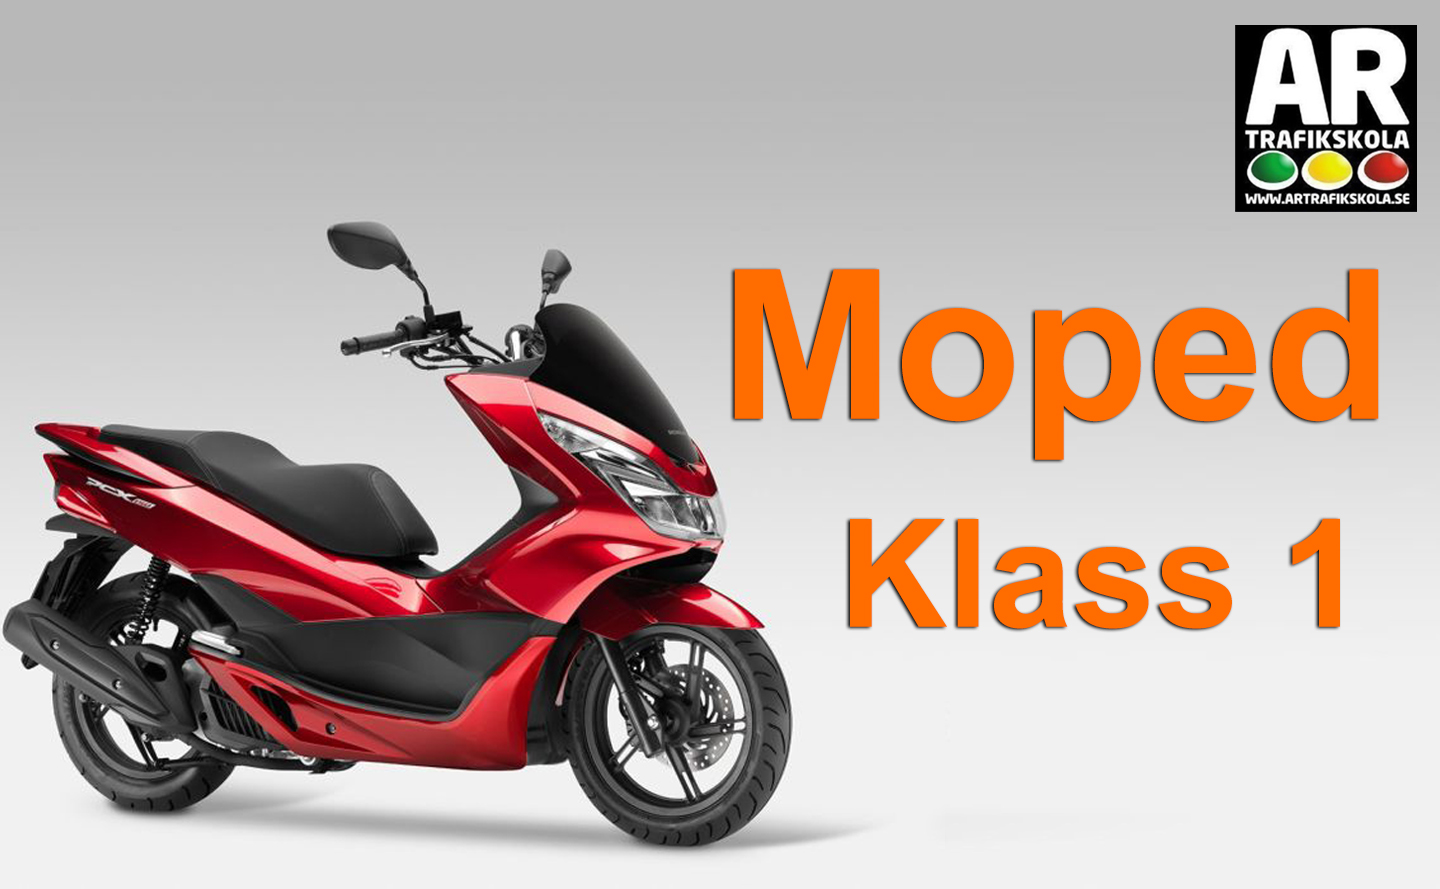 Moped_klass_1